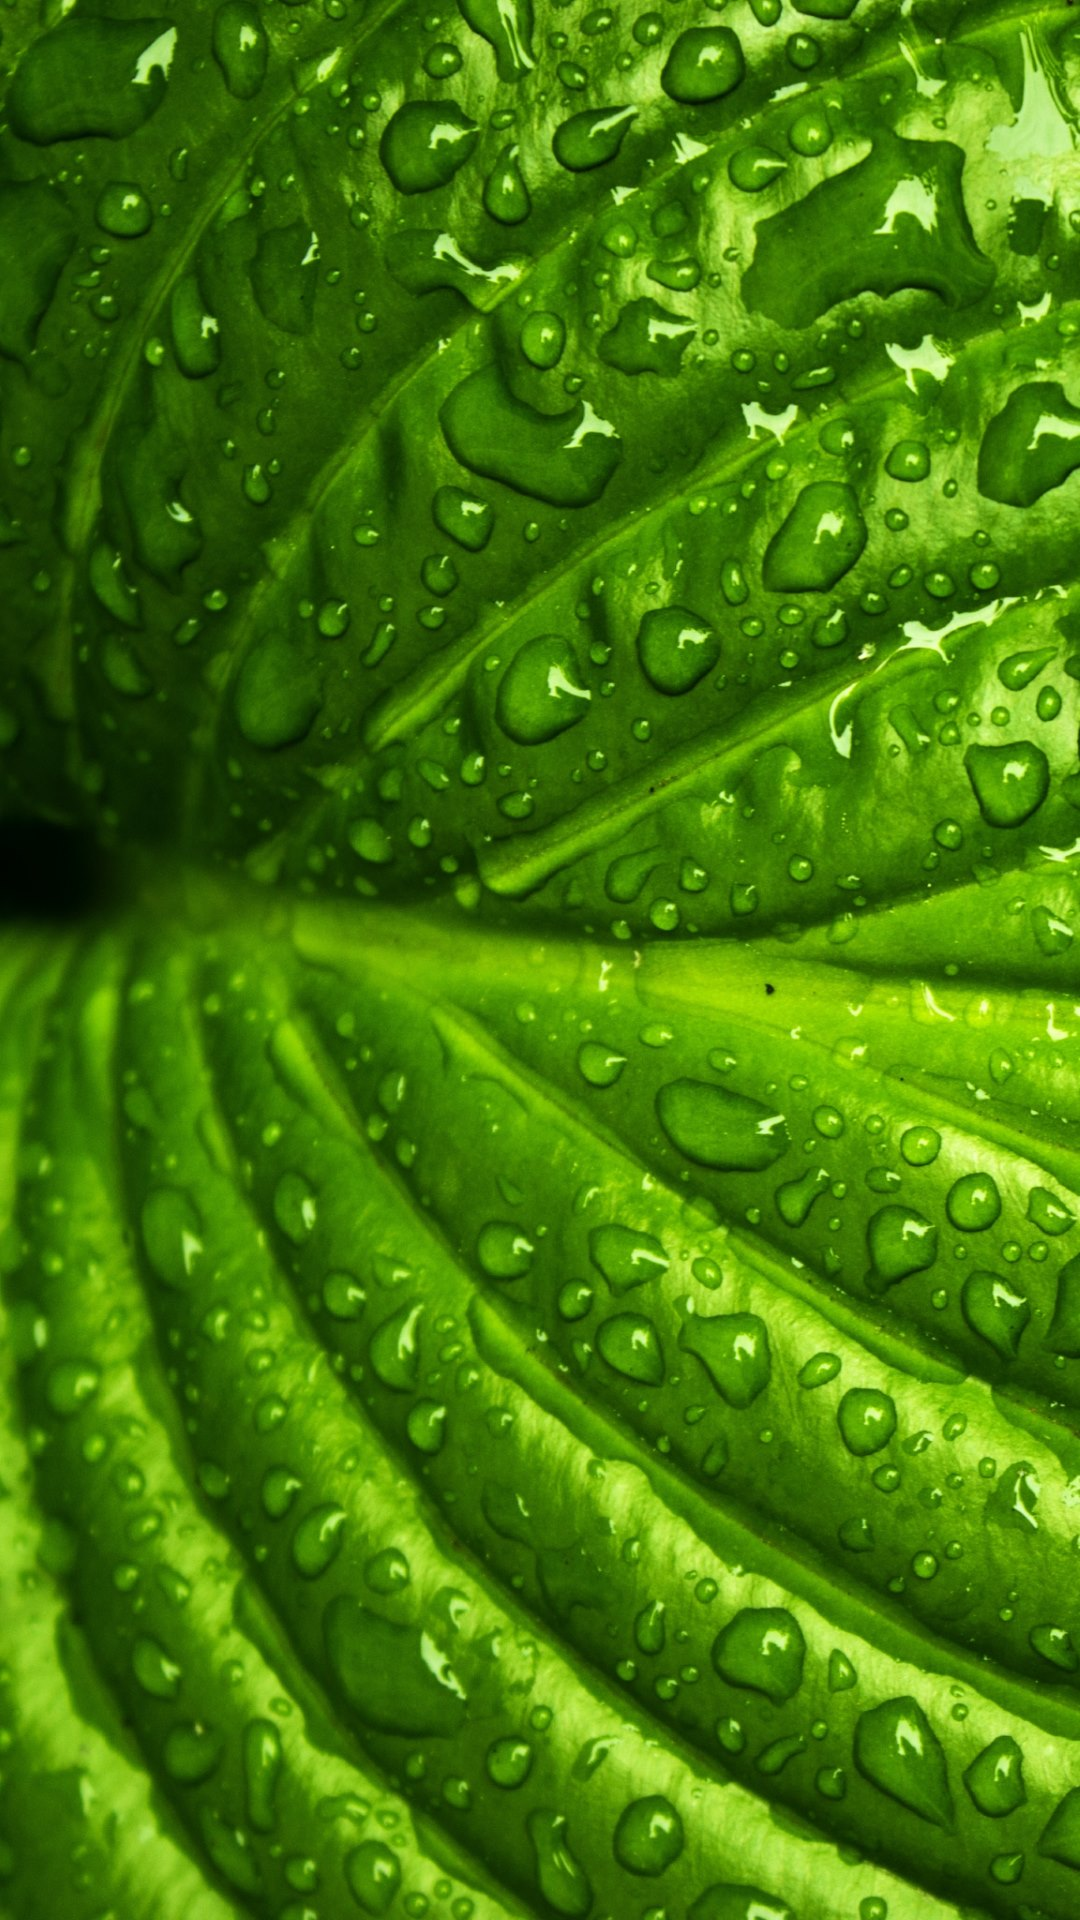 droplets on leaves 4k - photo #12